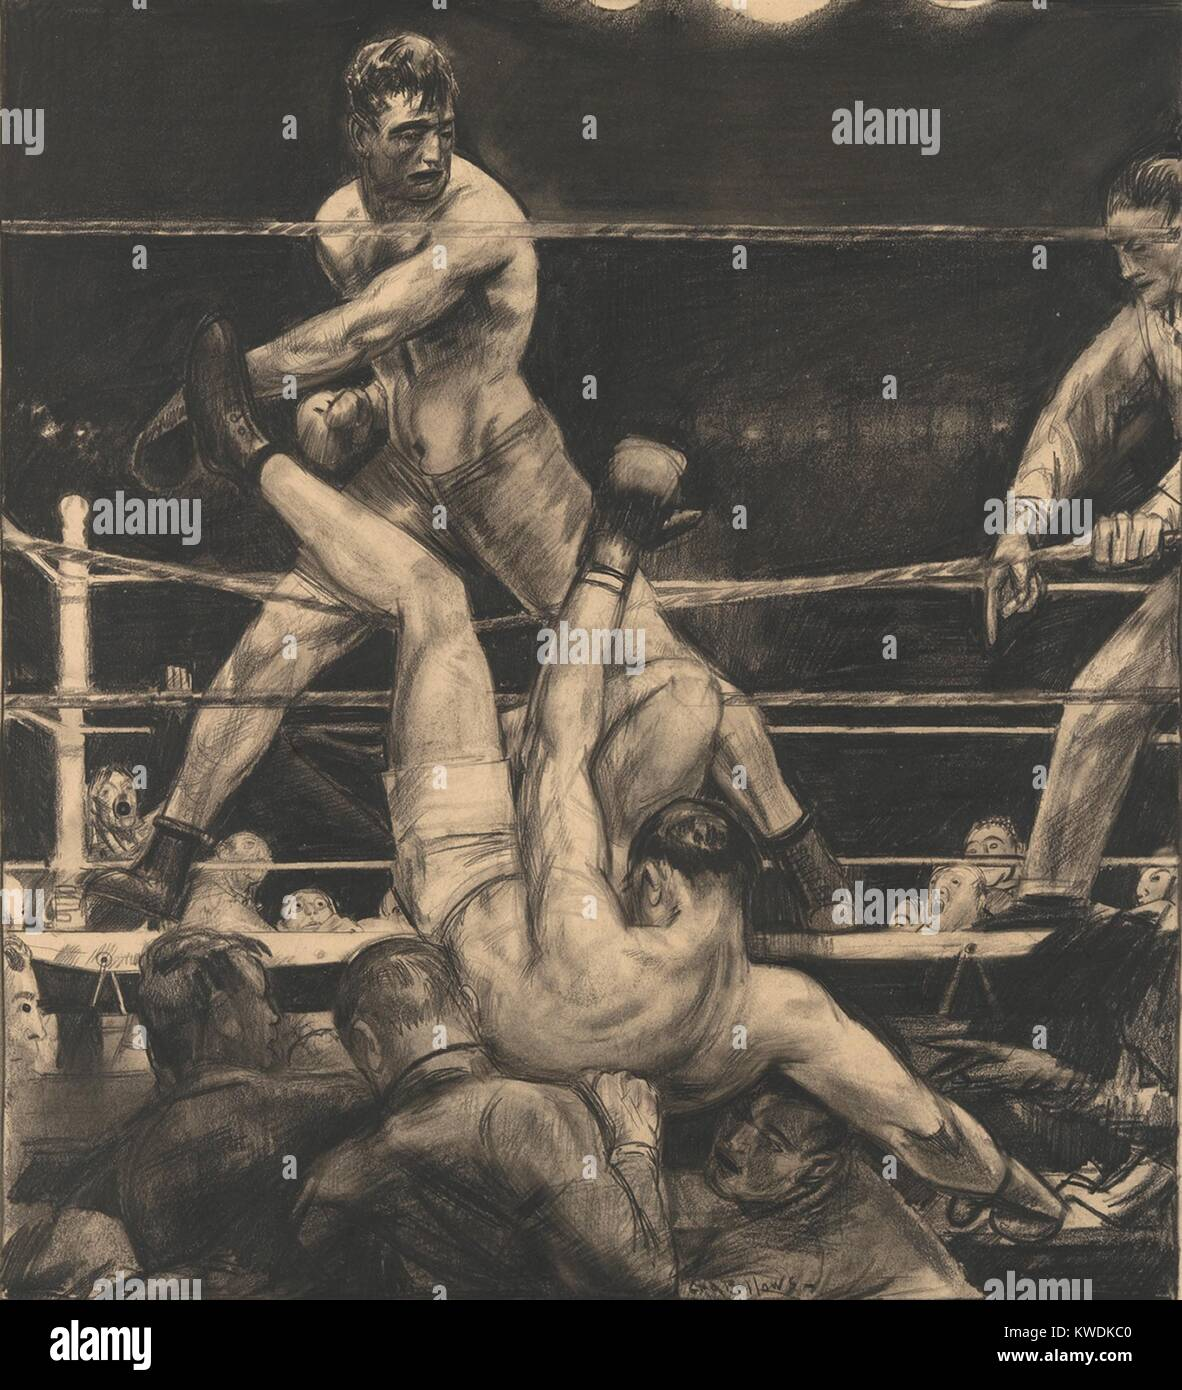 DEMPSEY THROUGH THE ROPES, by George Bellows, 1923, American drawing, lithographic crayon on paper. Luis Firpo knocked - Stock Image